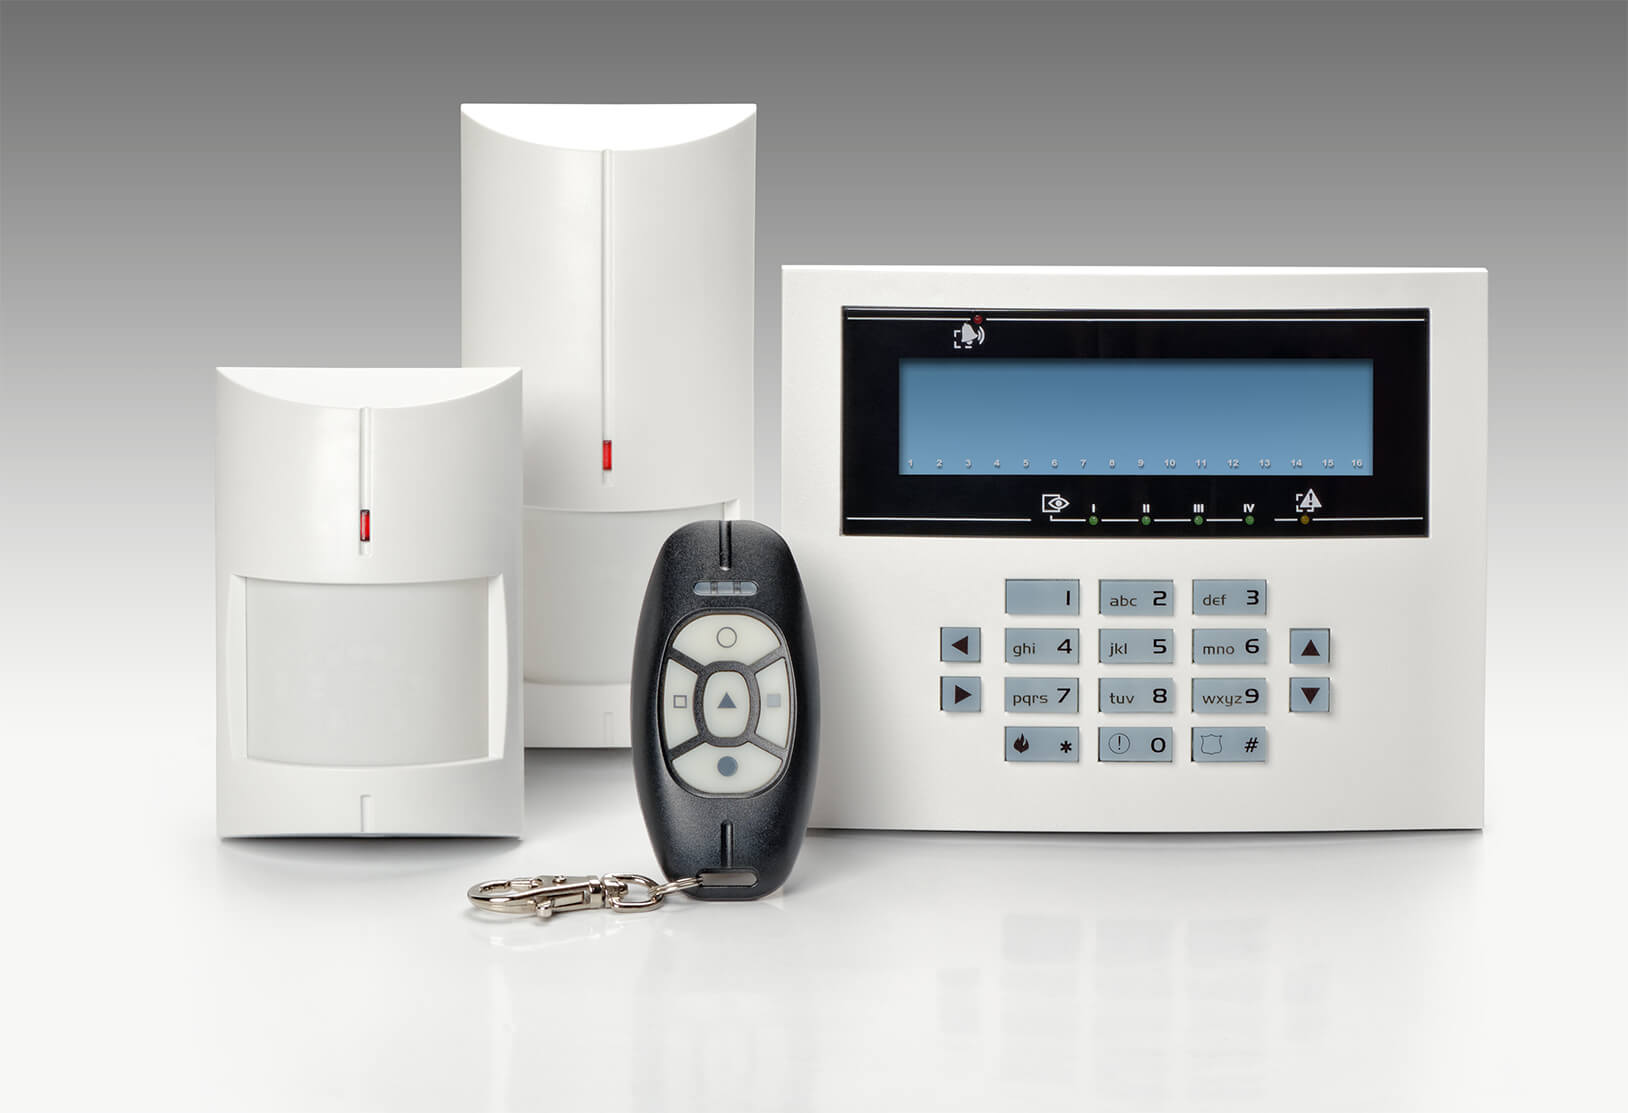 Business & Residential NSI / NACOSS Approved Burglar Alarms In Holloway N7 - Local Holloway N7 security company.Call 02078872244 - Dedicated to Safety & Security. Companies, shops and homes ..